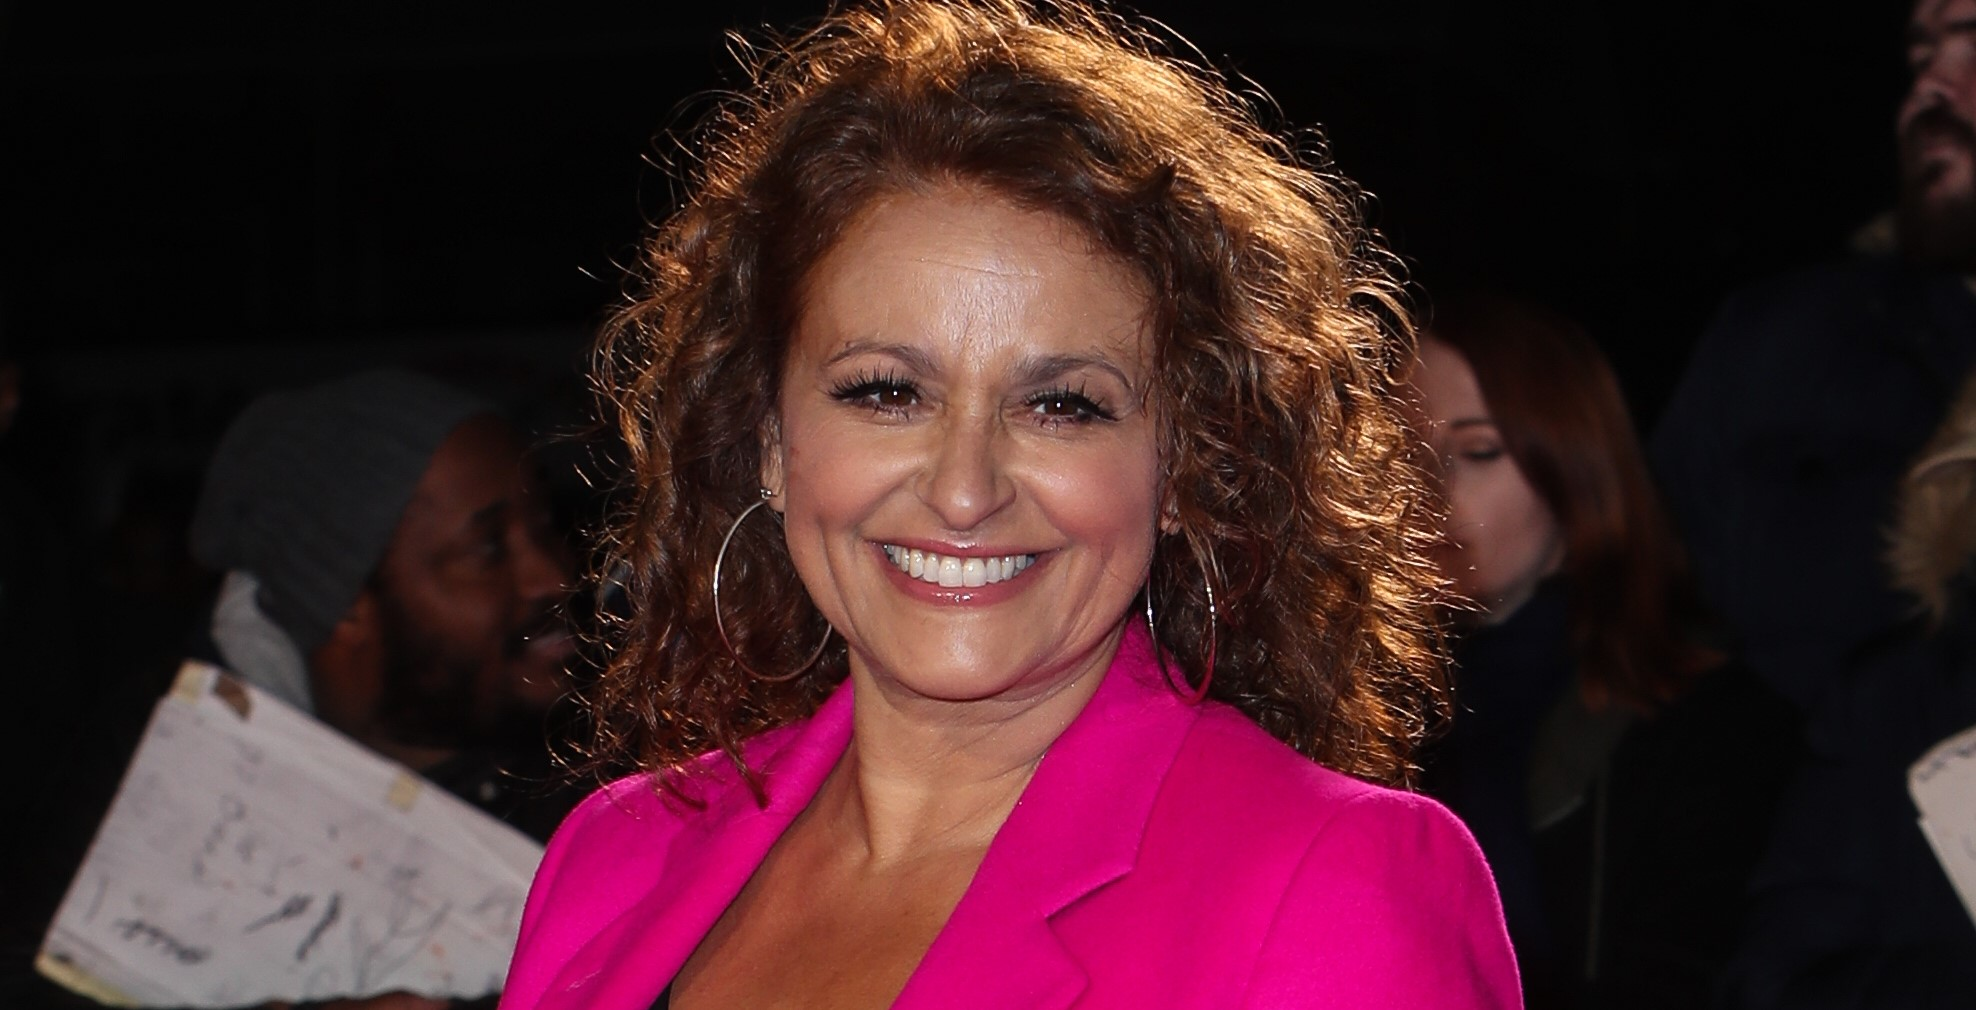 Nadia Sawalha 'embarrassed' by train commuter's remark about her appearance